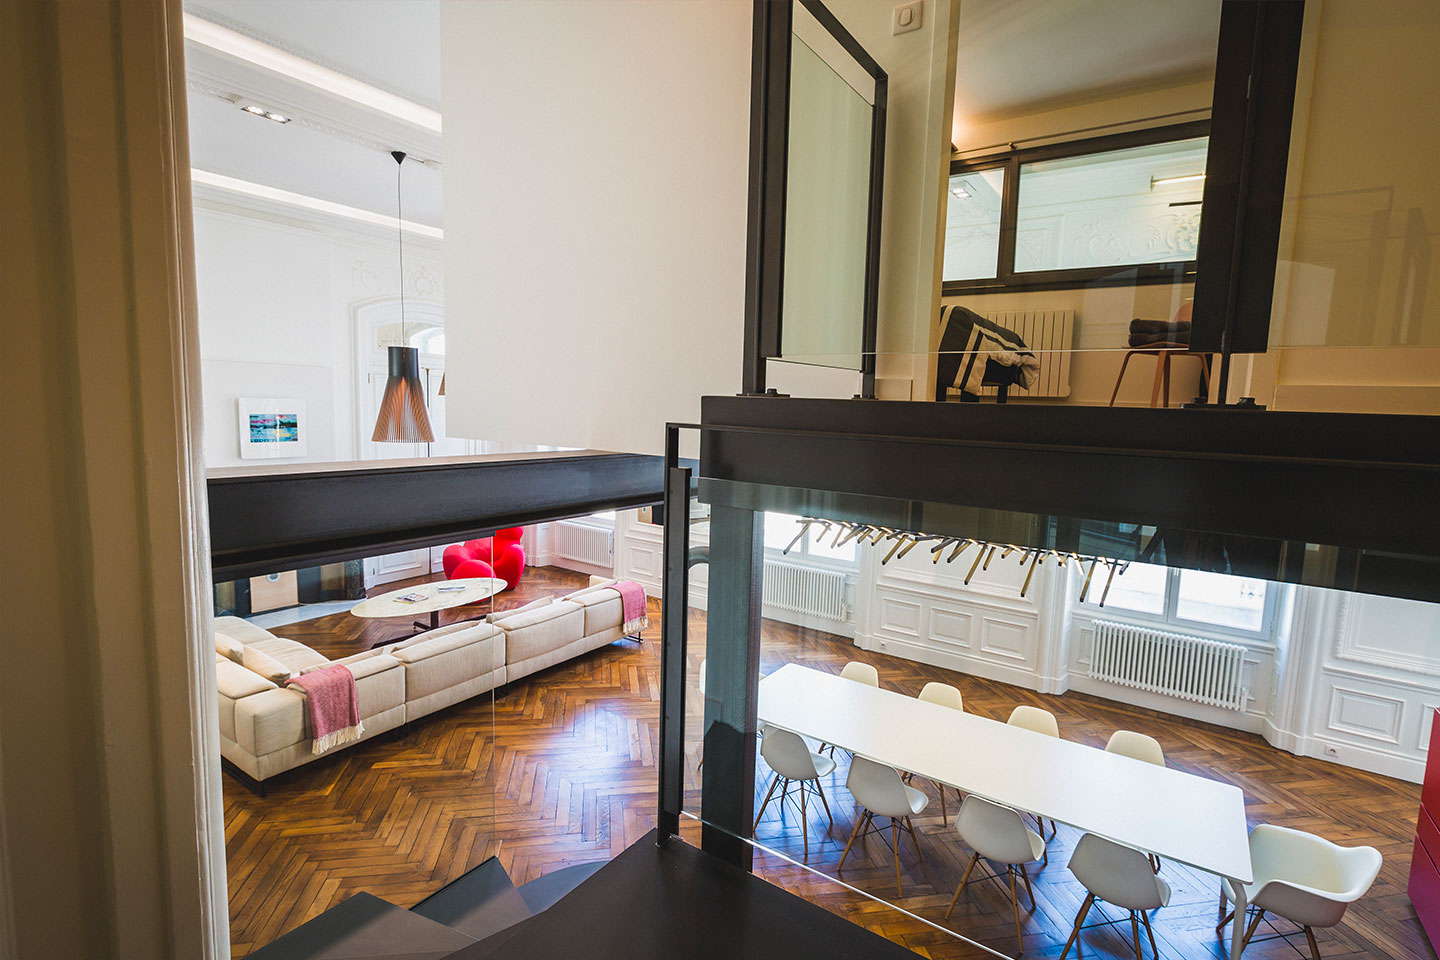 09 Location Biarritz LOFT